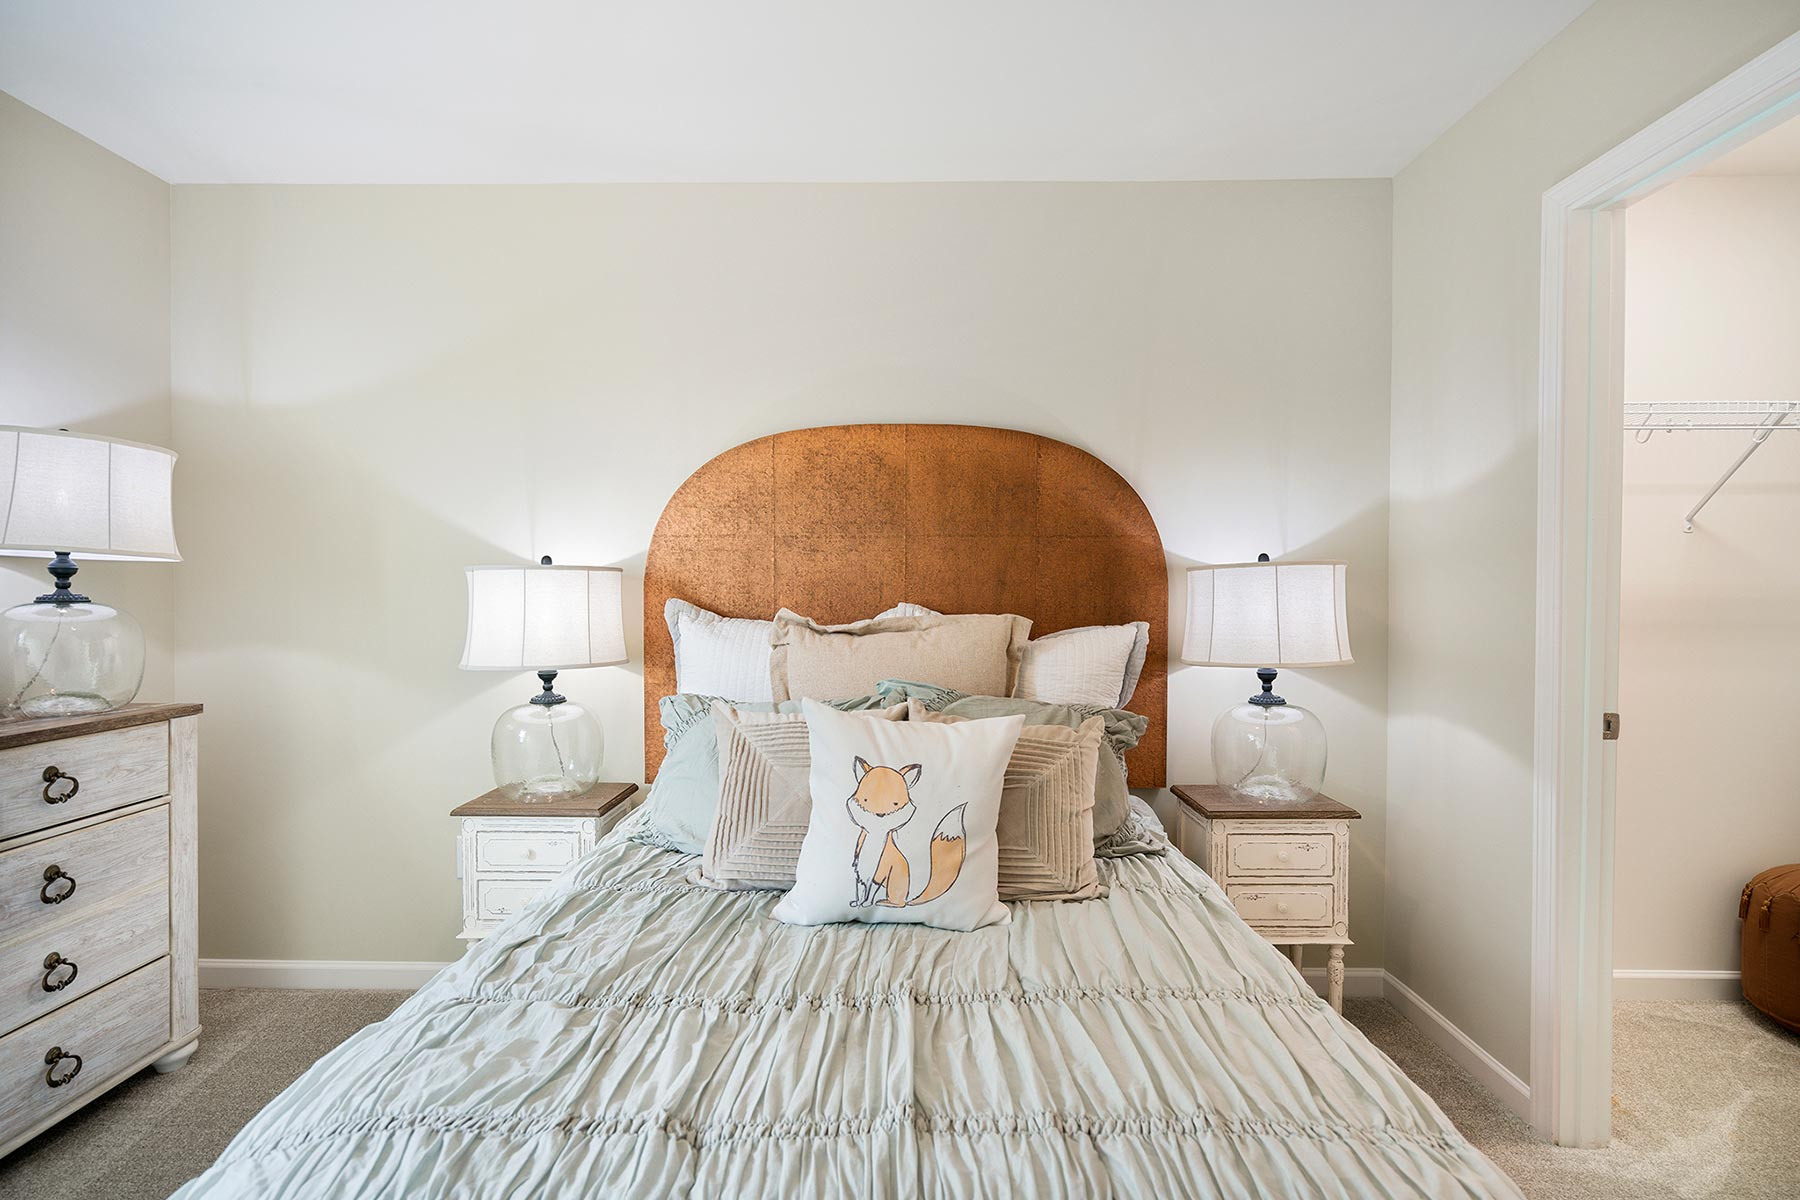 Amelia Plan Bedroom at Briar Gate in Fuquay-Varina North Carolina by Mattamy Homes